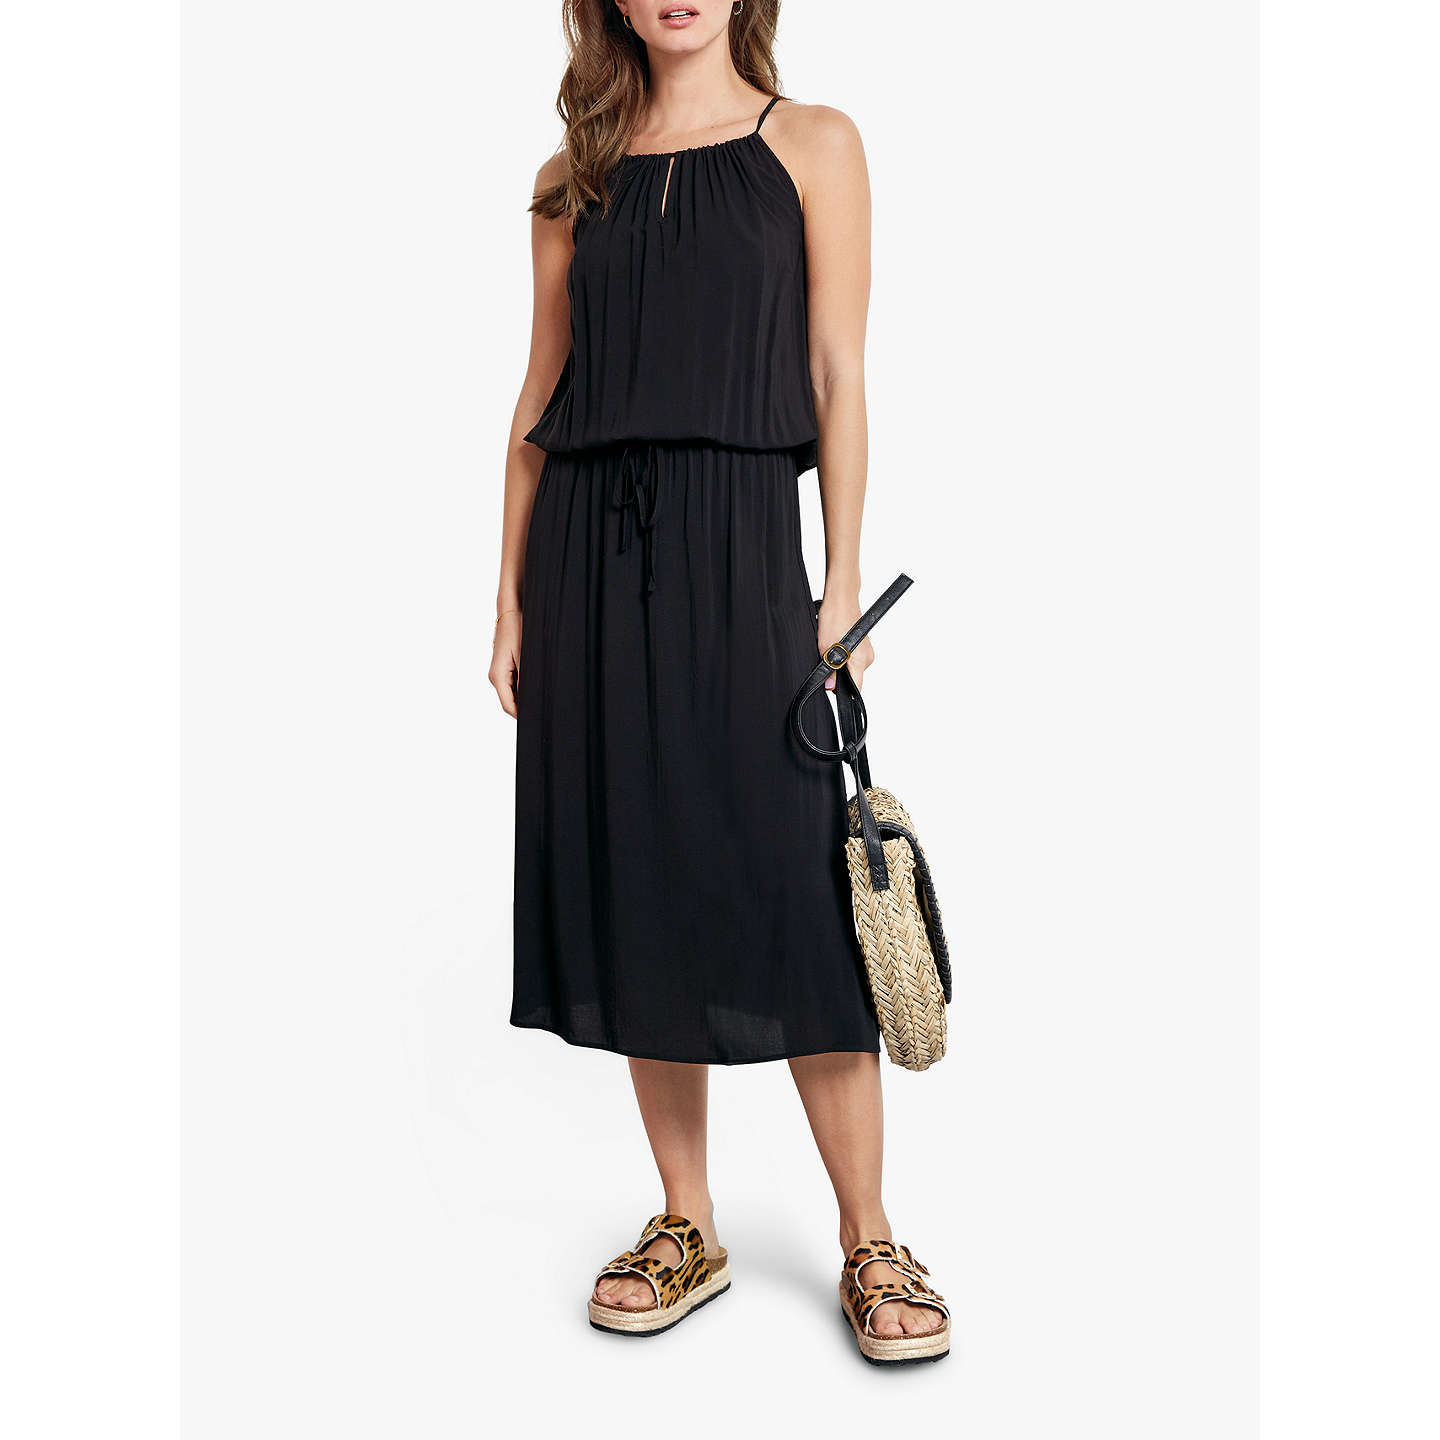 Hush Canterbury Dress, Black by Hush